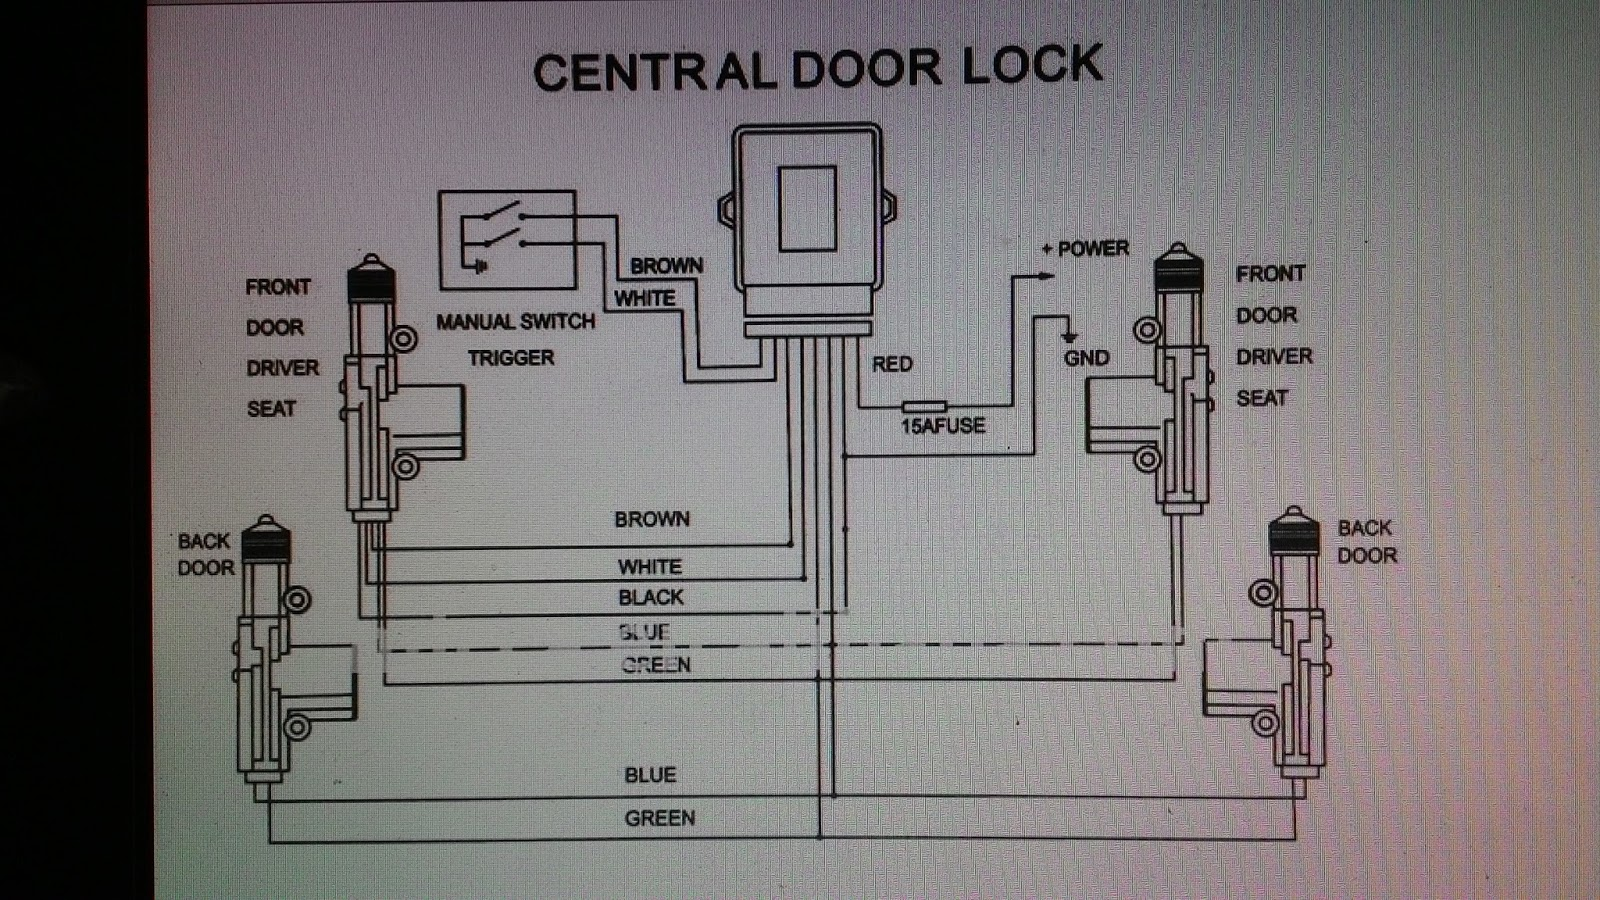 tamarack central locking wiring diagram wiring library Door Wood Diagram kereta ku sayang sambungan alarm dan central lock fog lamp wiring diagram kancil central lock wiring